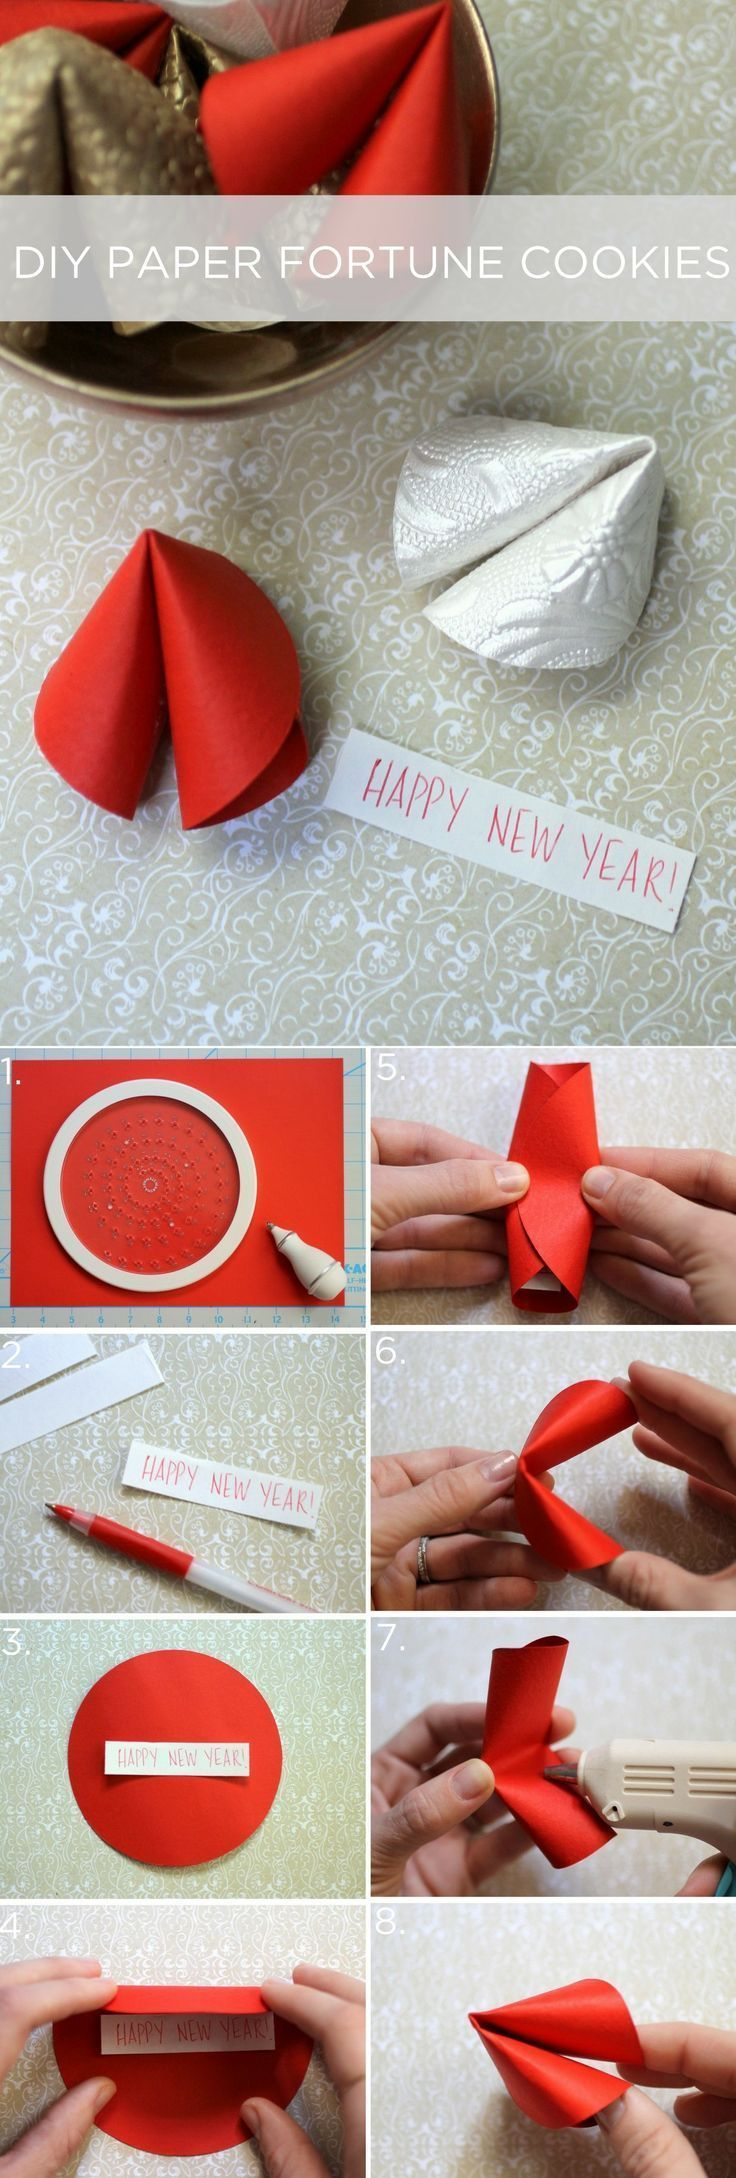 Chinese New Year: DIY Paper Fortune Cookies - Evite